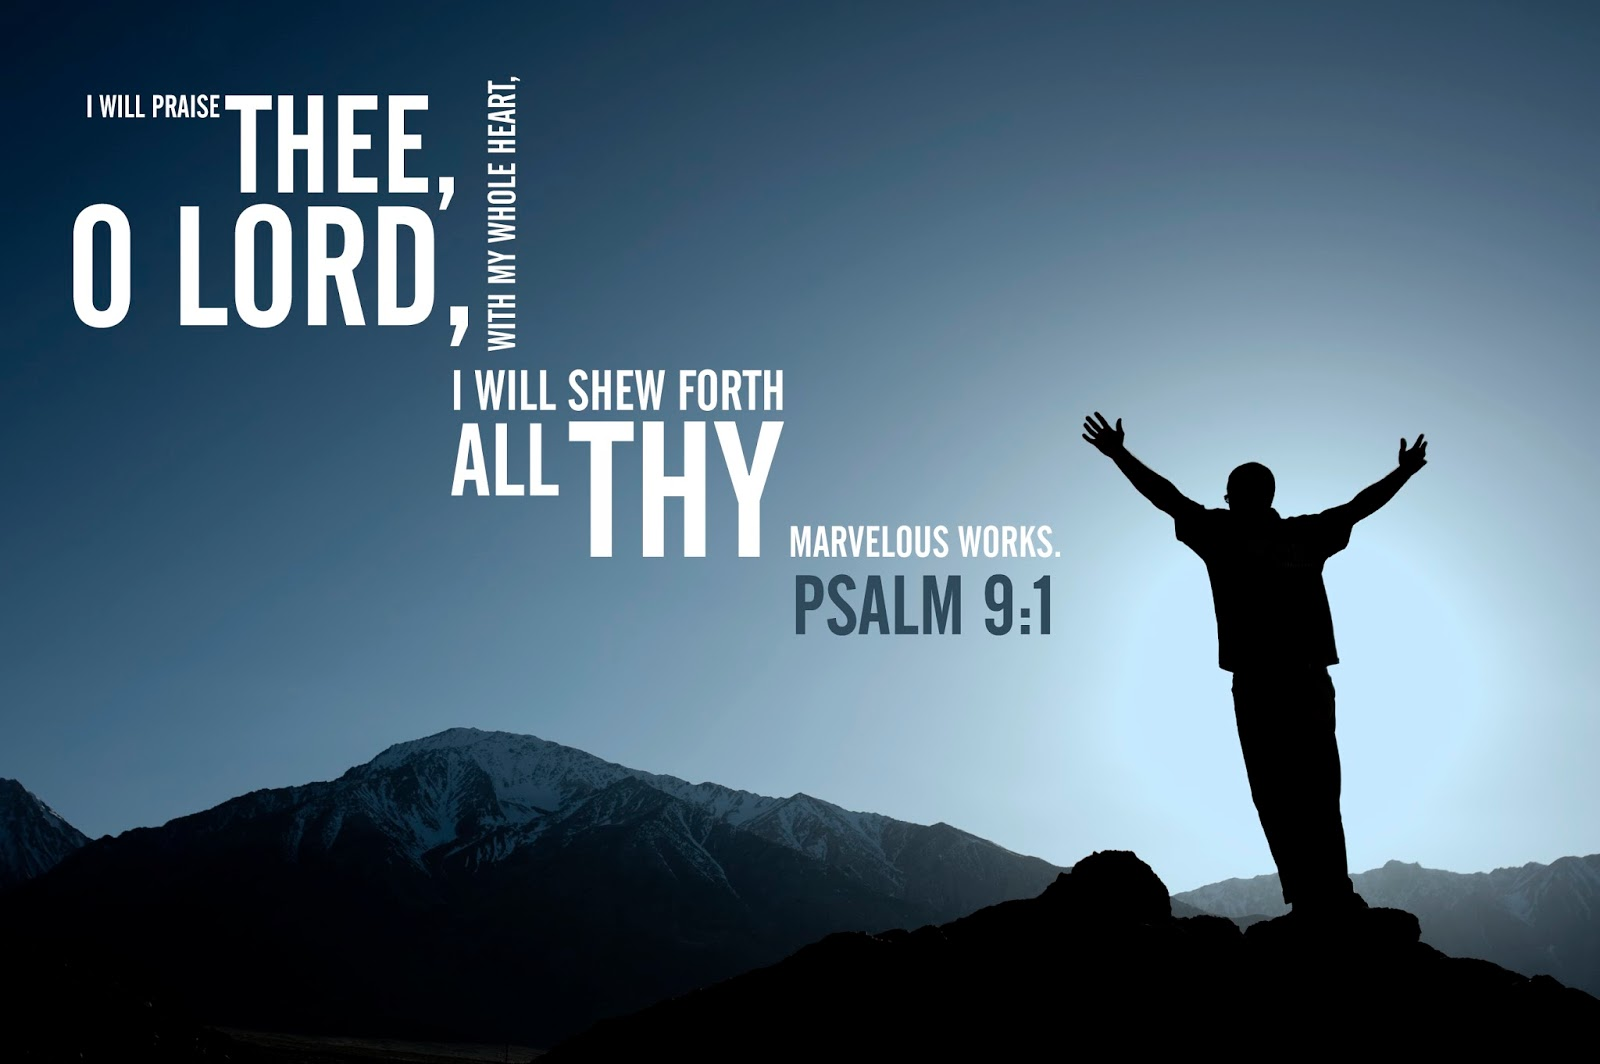 Isaiah 33:5-13 - Praising God in the midst of judgment | Jesus: The